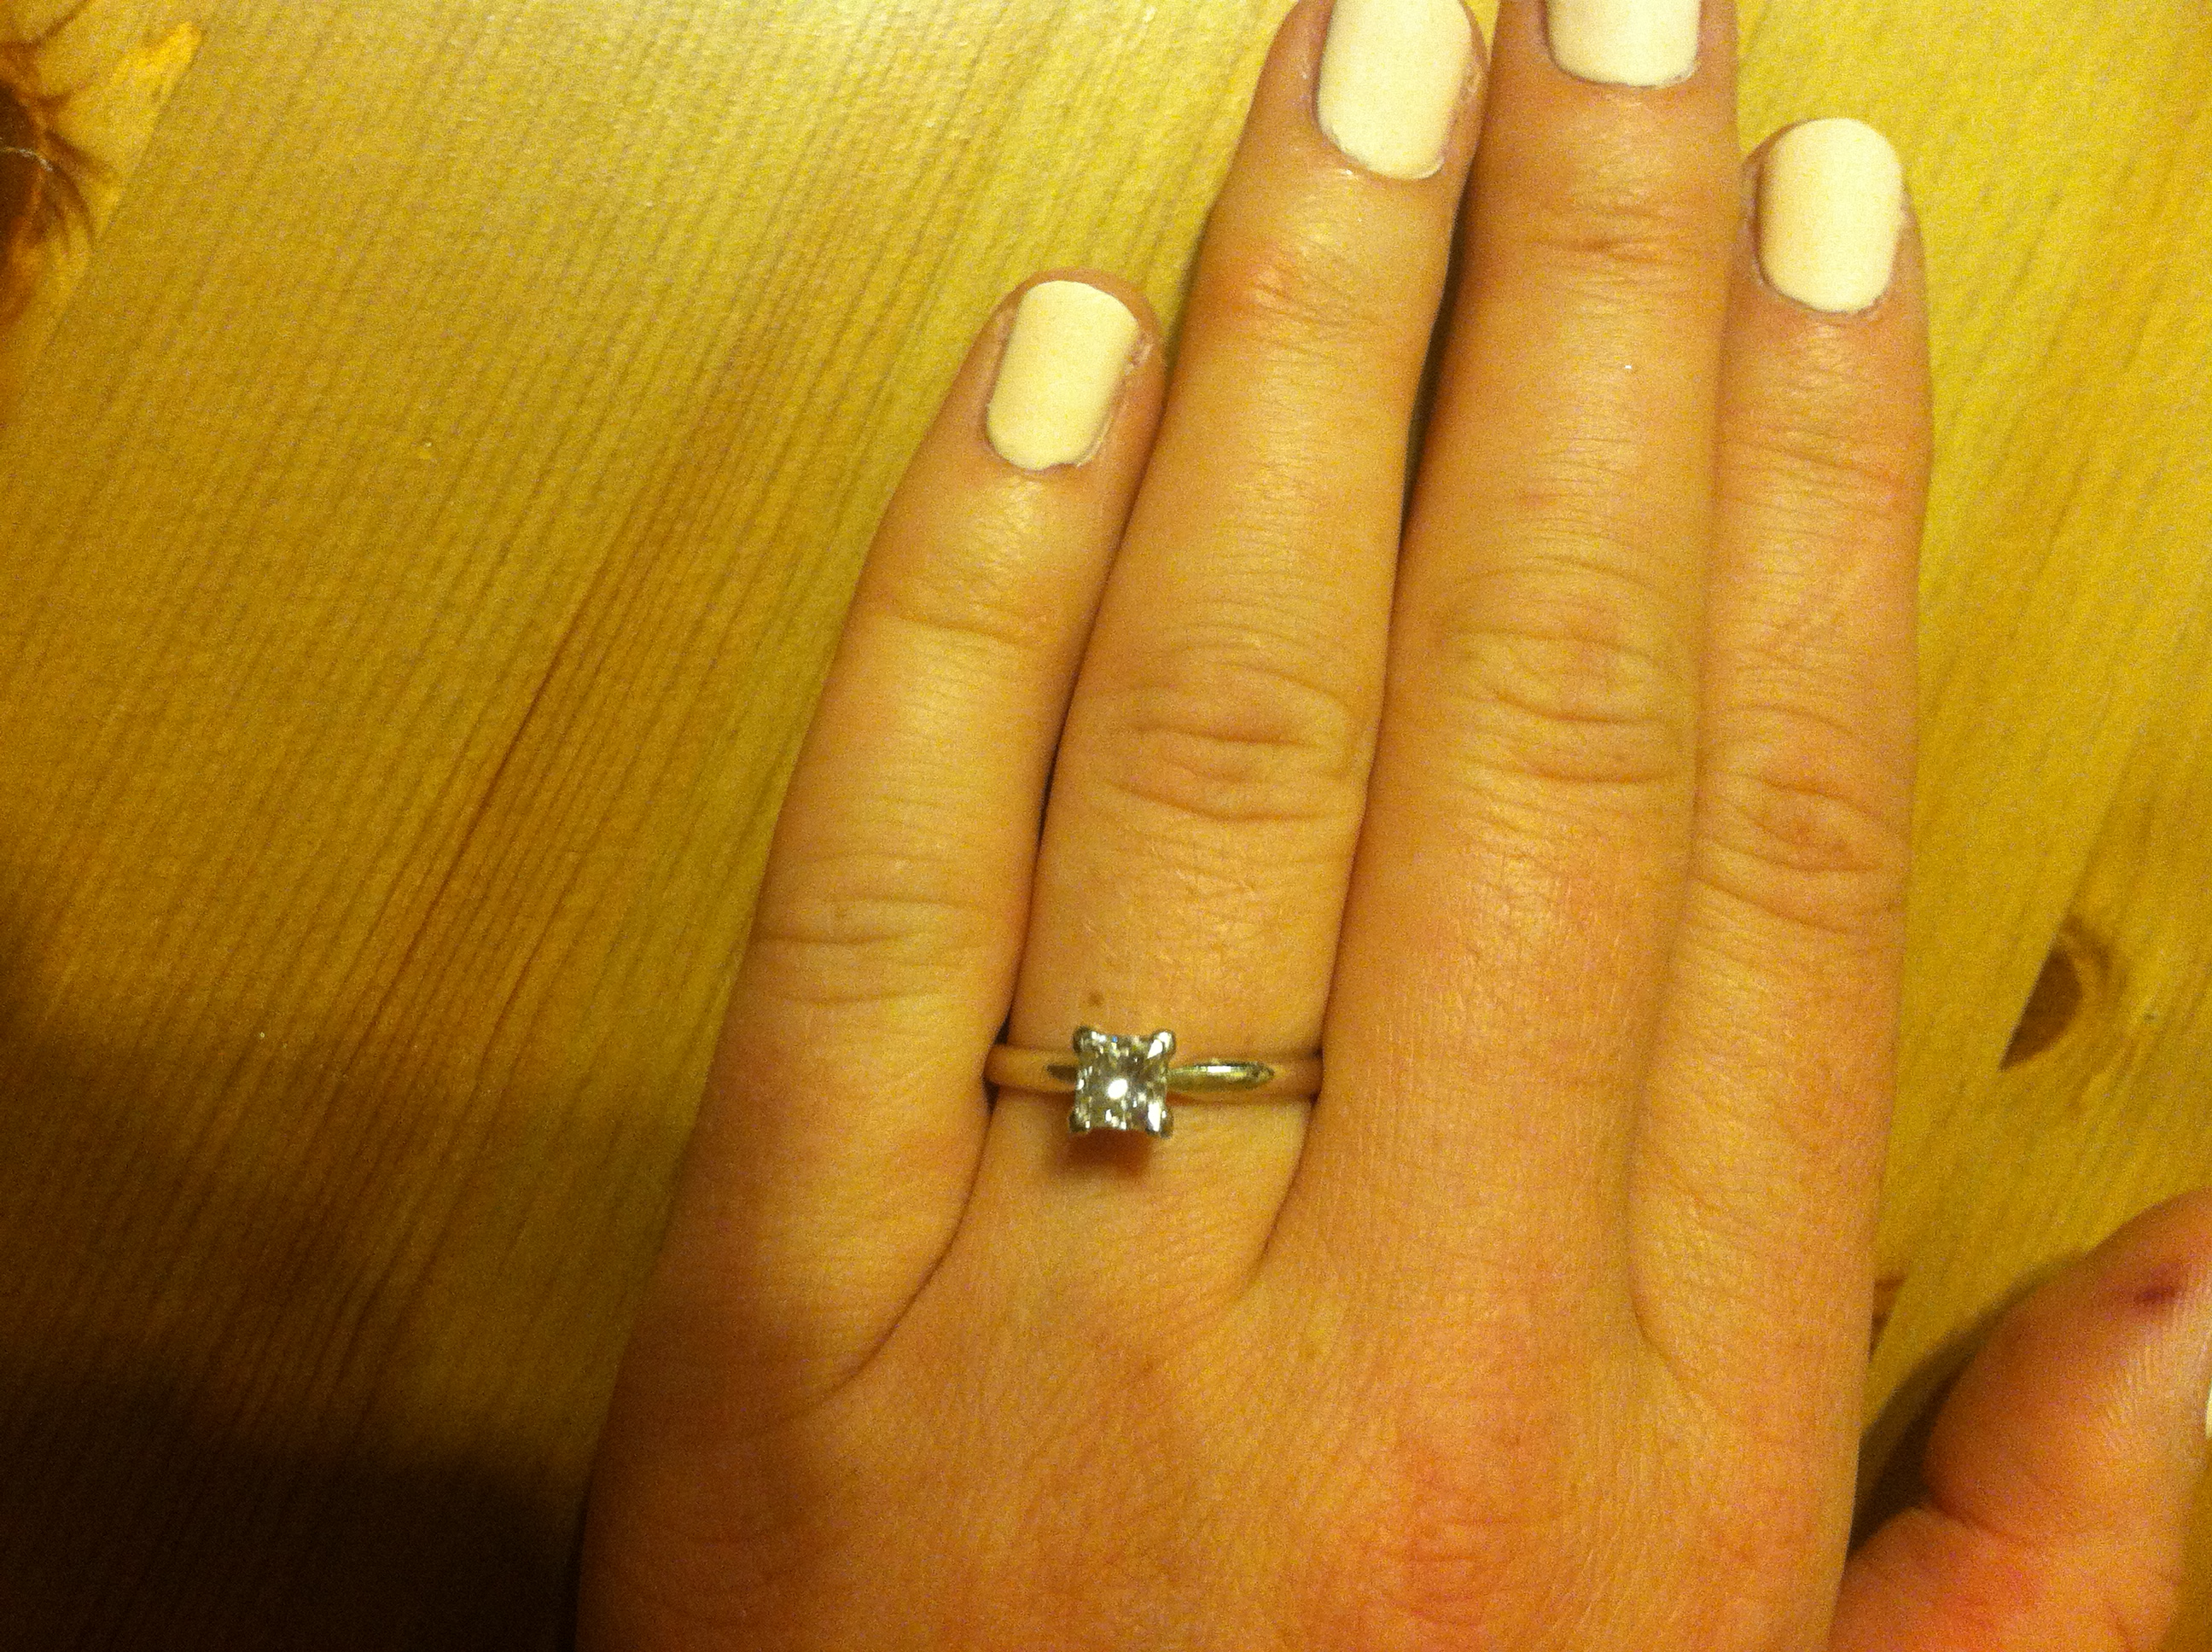 72 Carat Size 7 14 Carat White Gold Solitaire Princess Cut Diamond Engagement Ring I Do Now I Don T